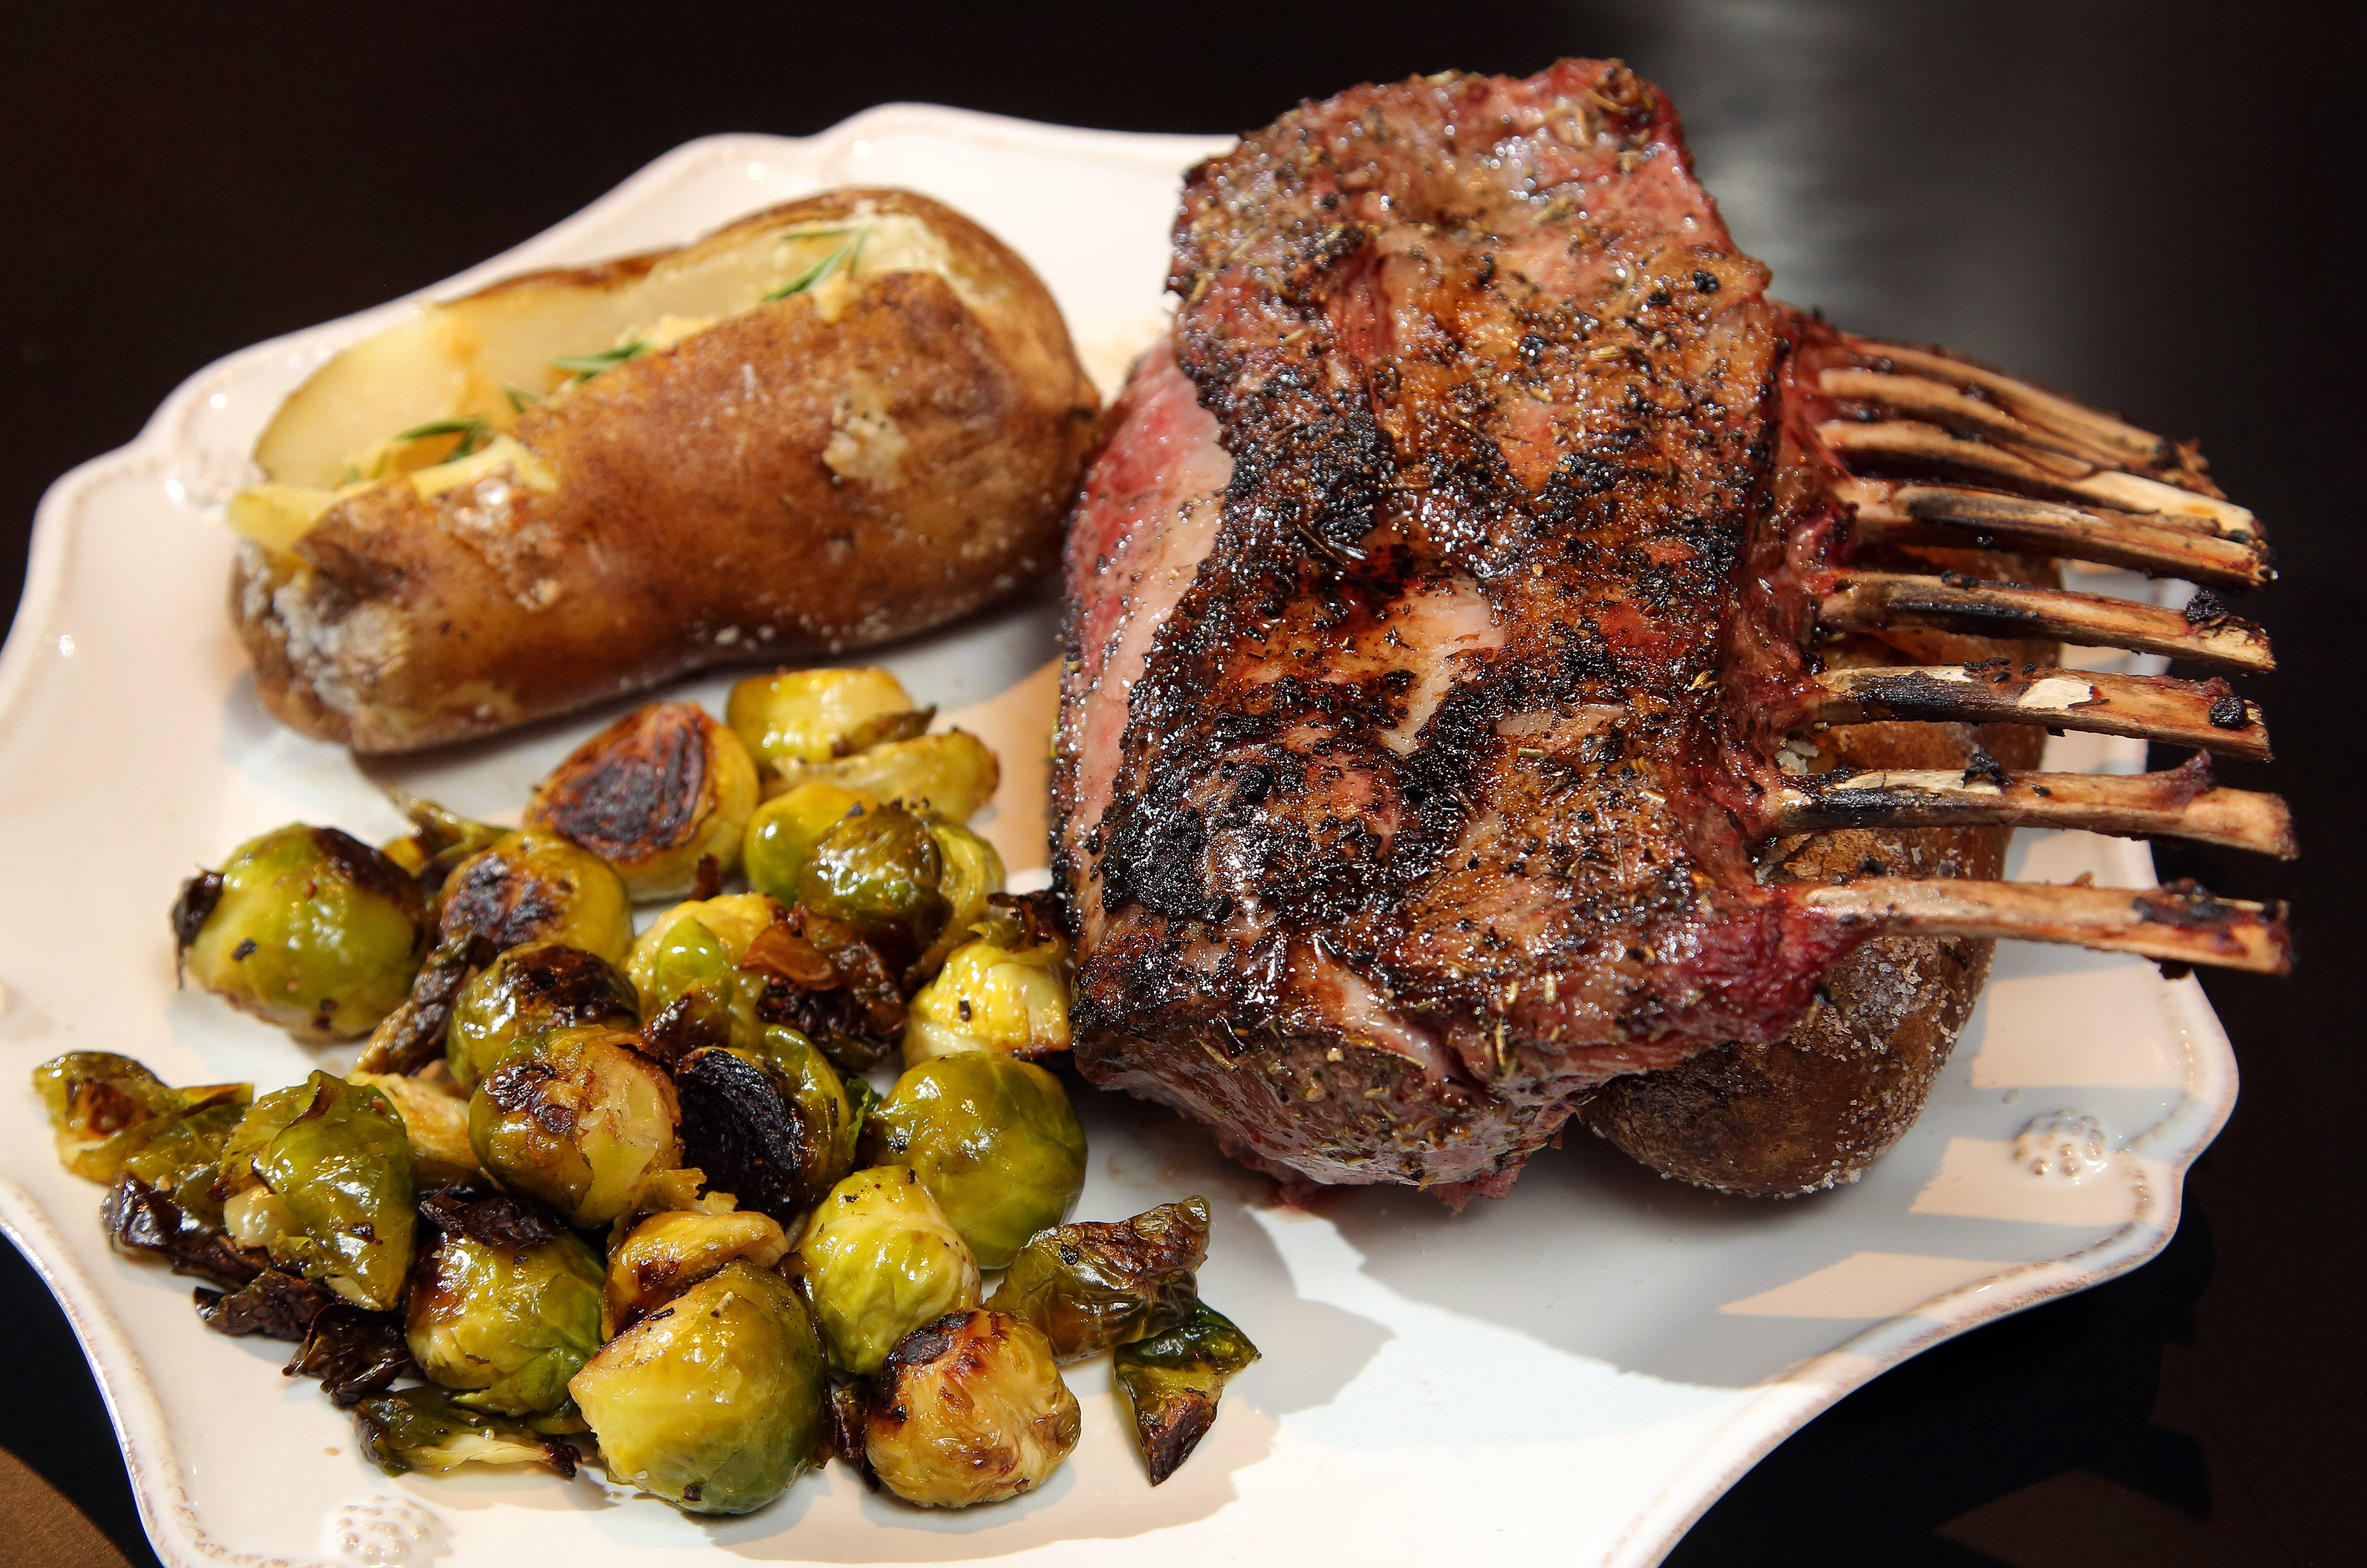 John Harty and Sue Ascher of Riverwoods made rack of lamb with roasted brussel sprouts and baked potato.